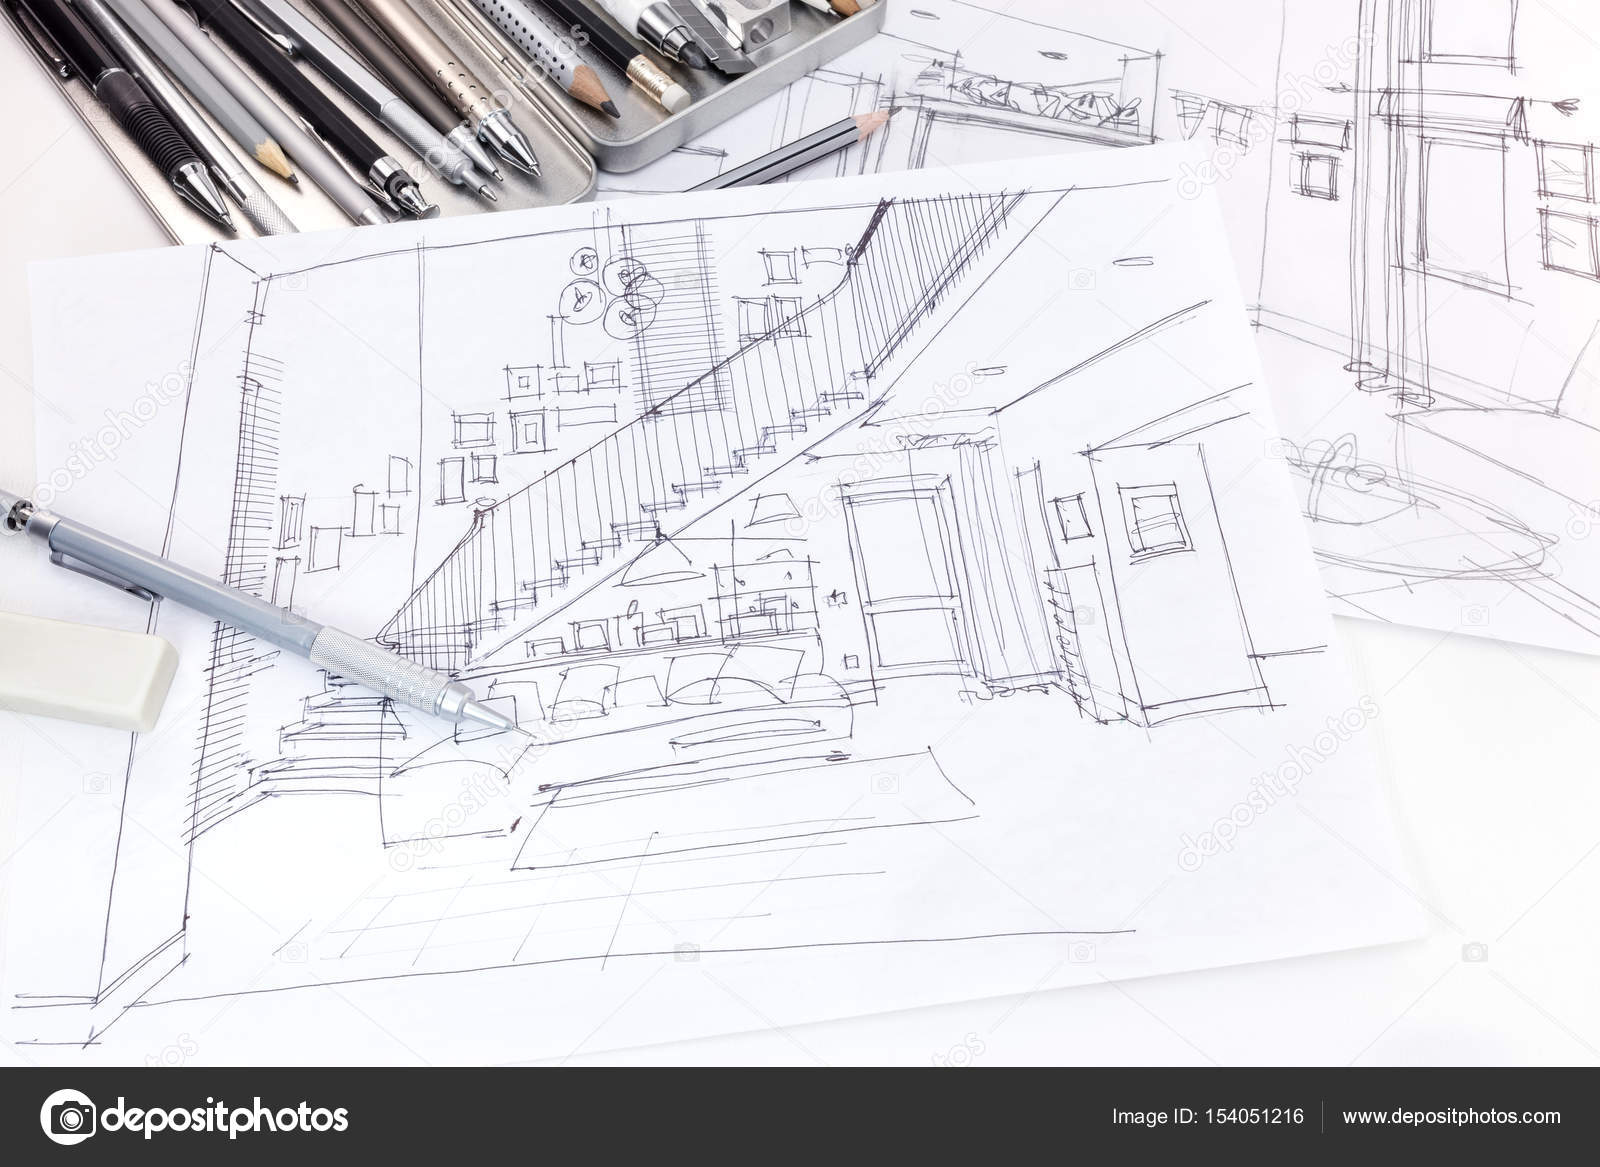 Graphical sketches of living room interior and furniture blueprint designers graphical sketches of living room interior and furniture blueprint with various drawing tools photo by mrtwister malvernweather Images